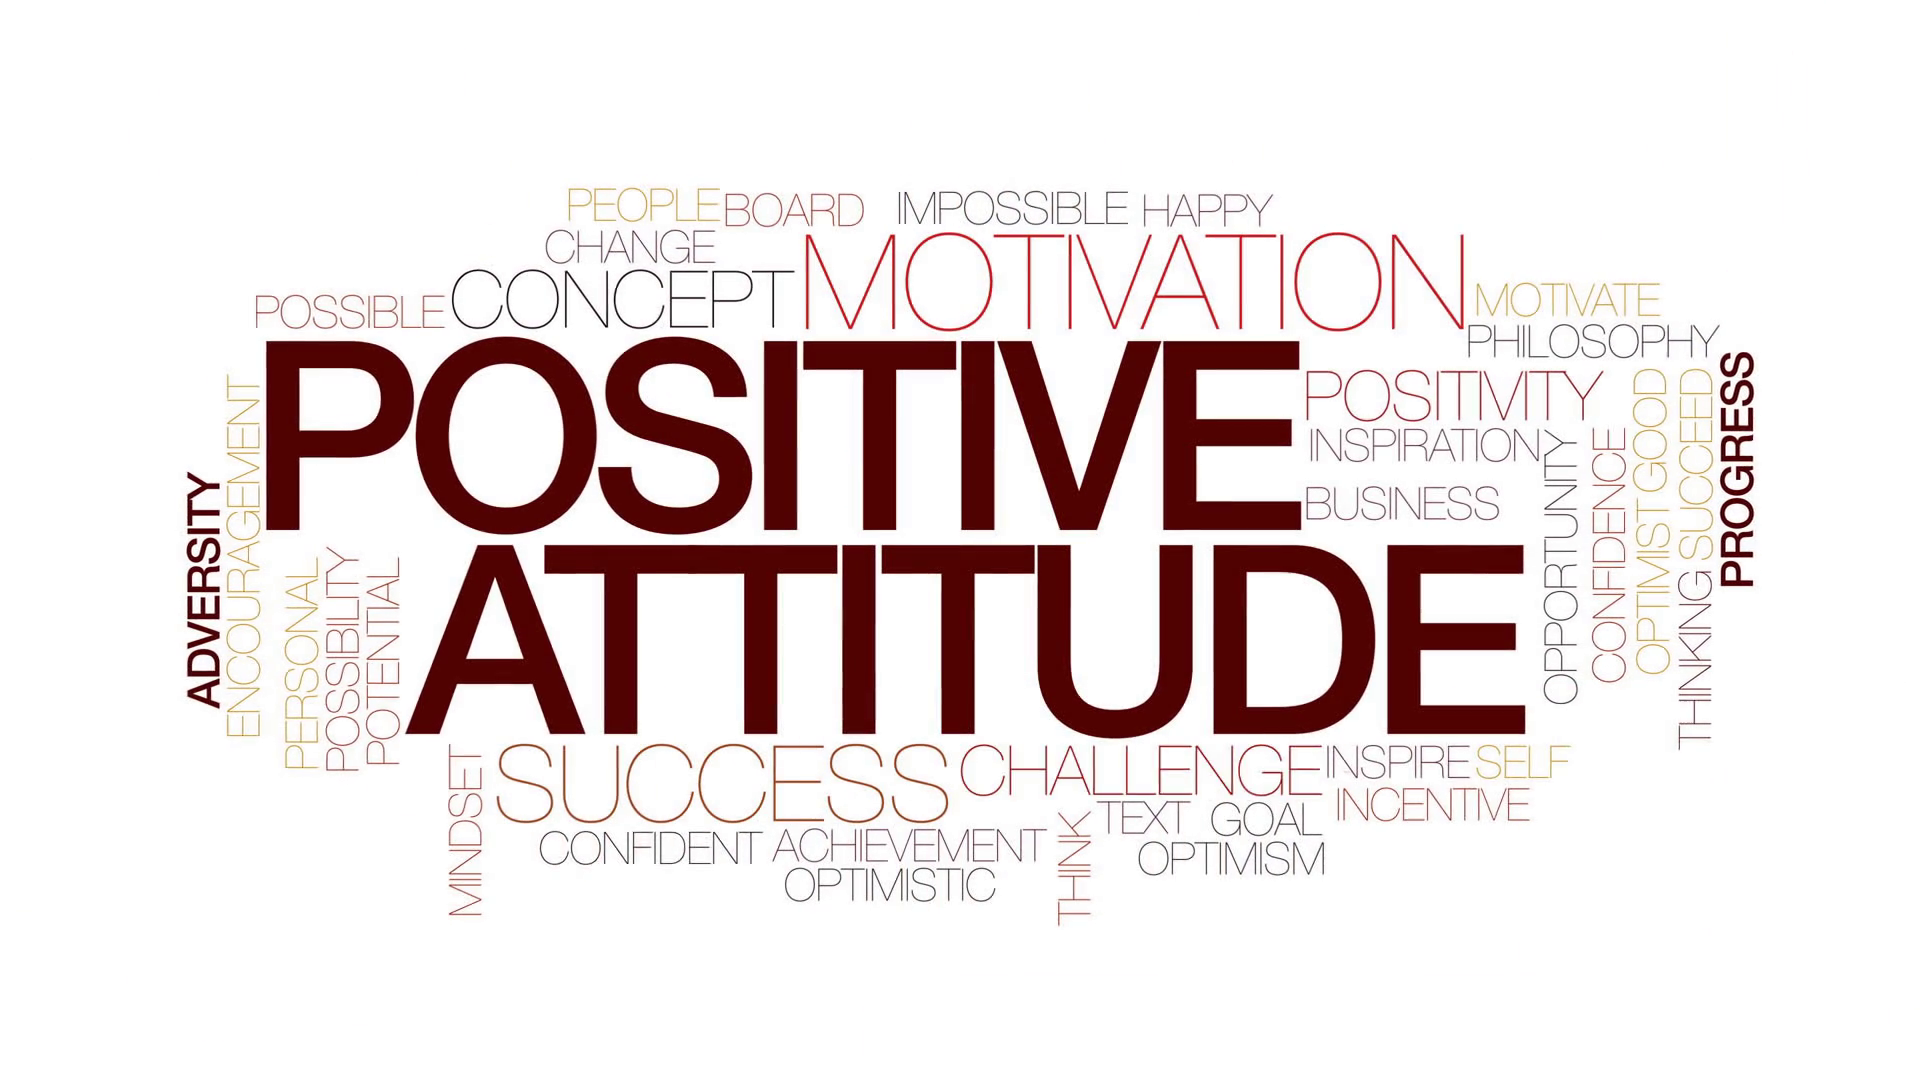 positive-attitude-animated-word-cloud-text-animation-kinetic-typography_sggxa48cfx_thumbnail-full08.png